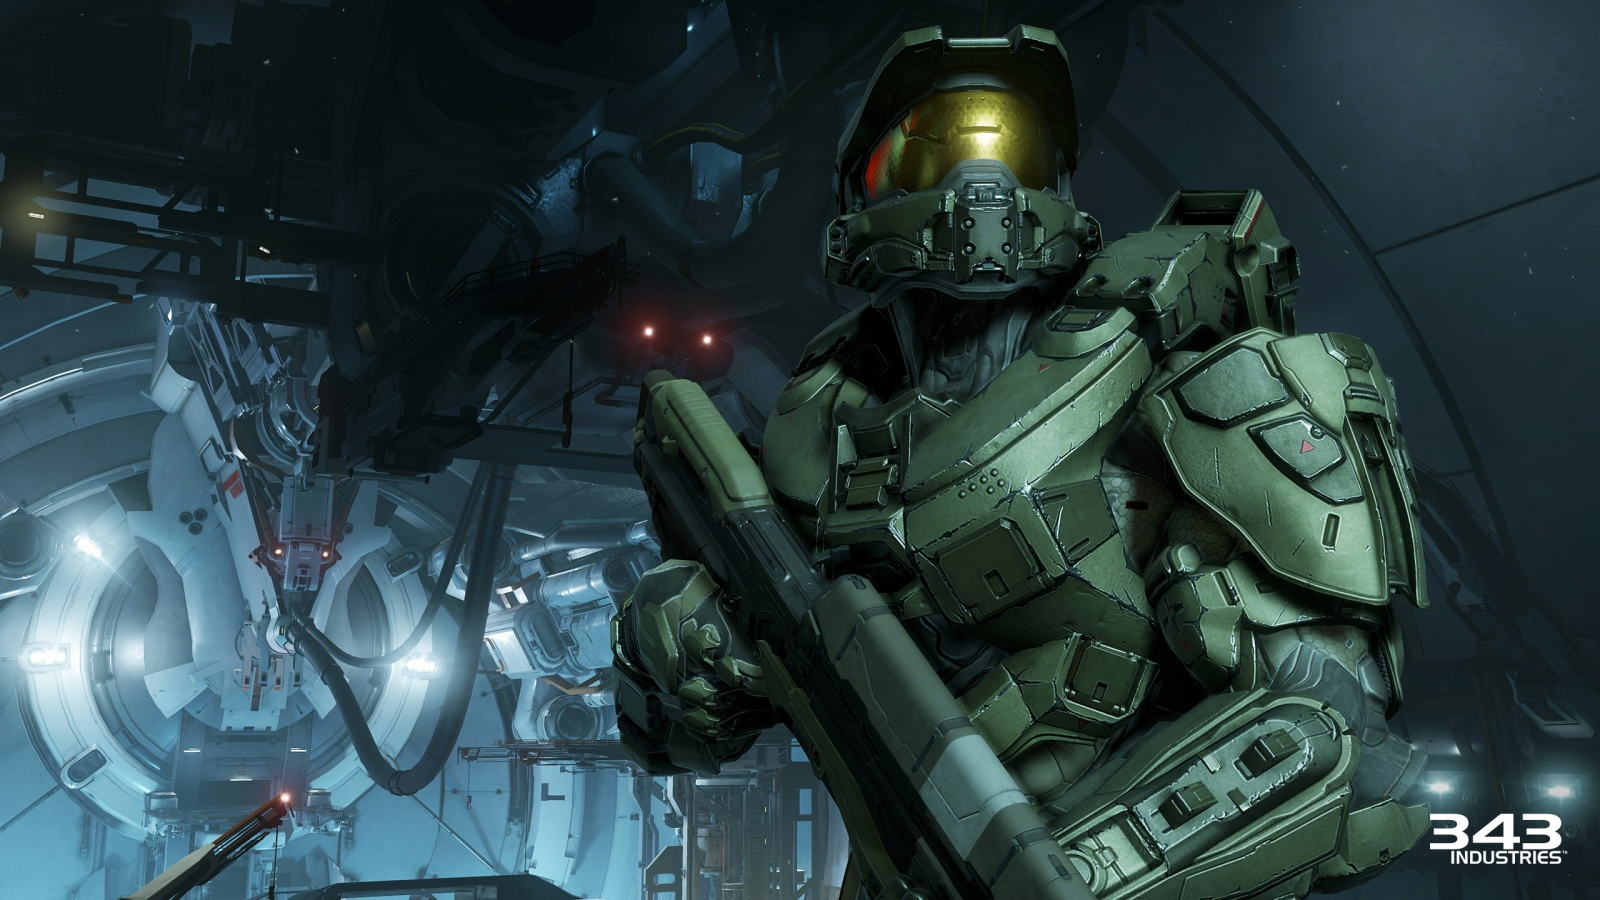 Halo 5 - Guardians - Master Chief - Screen